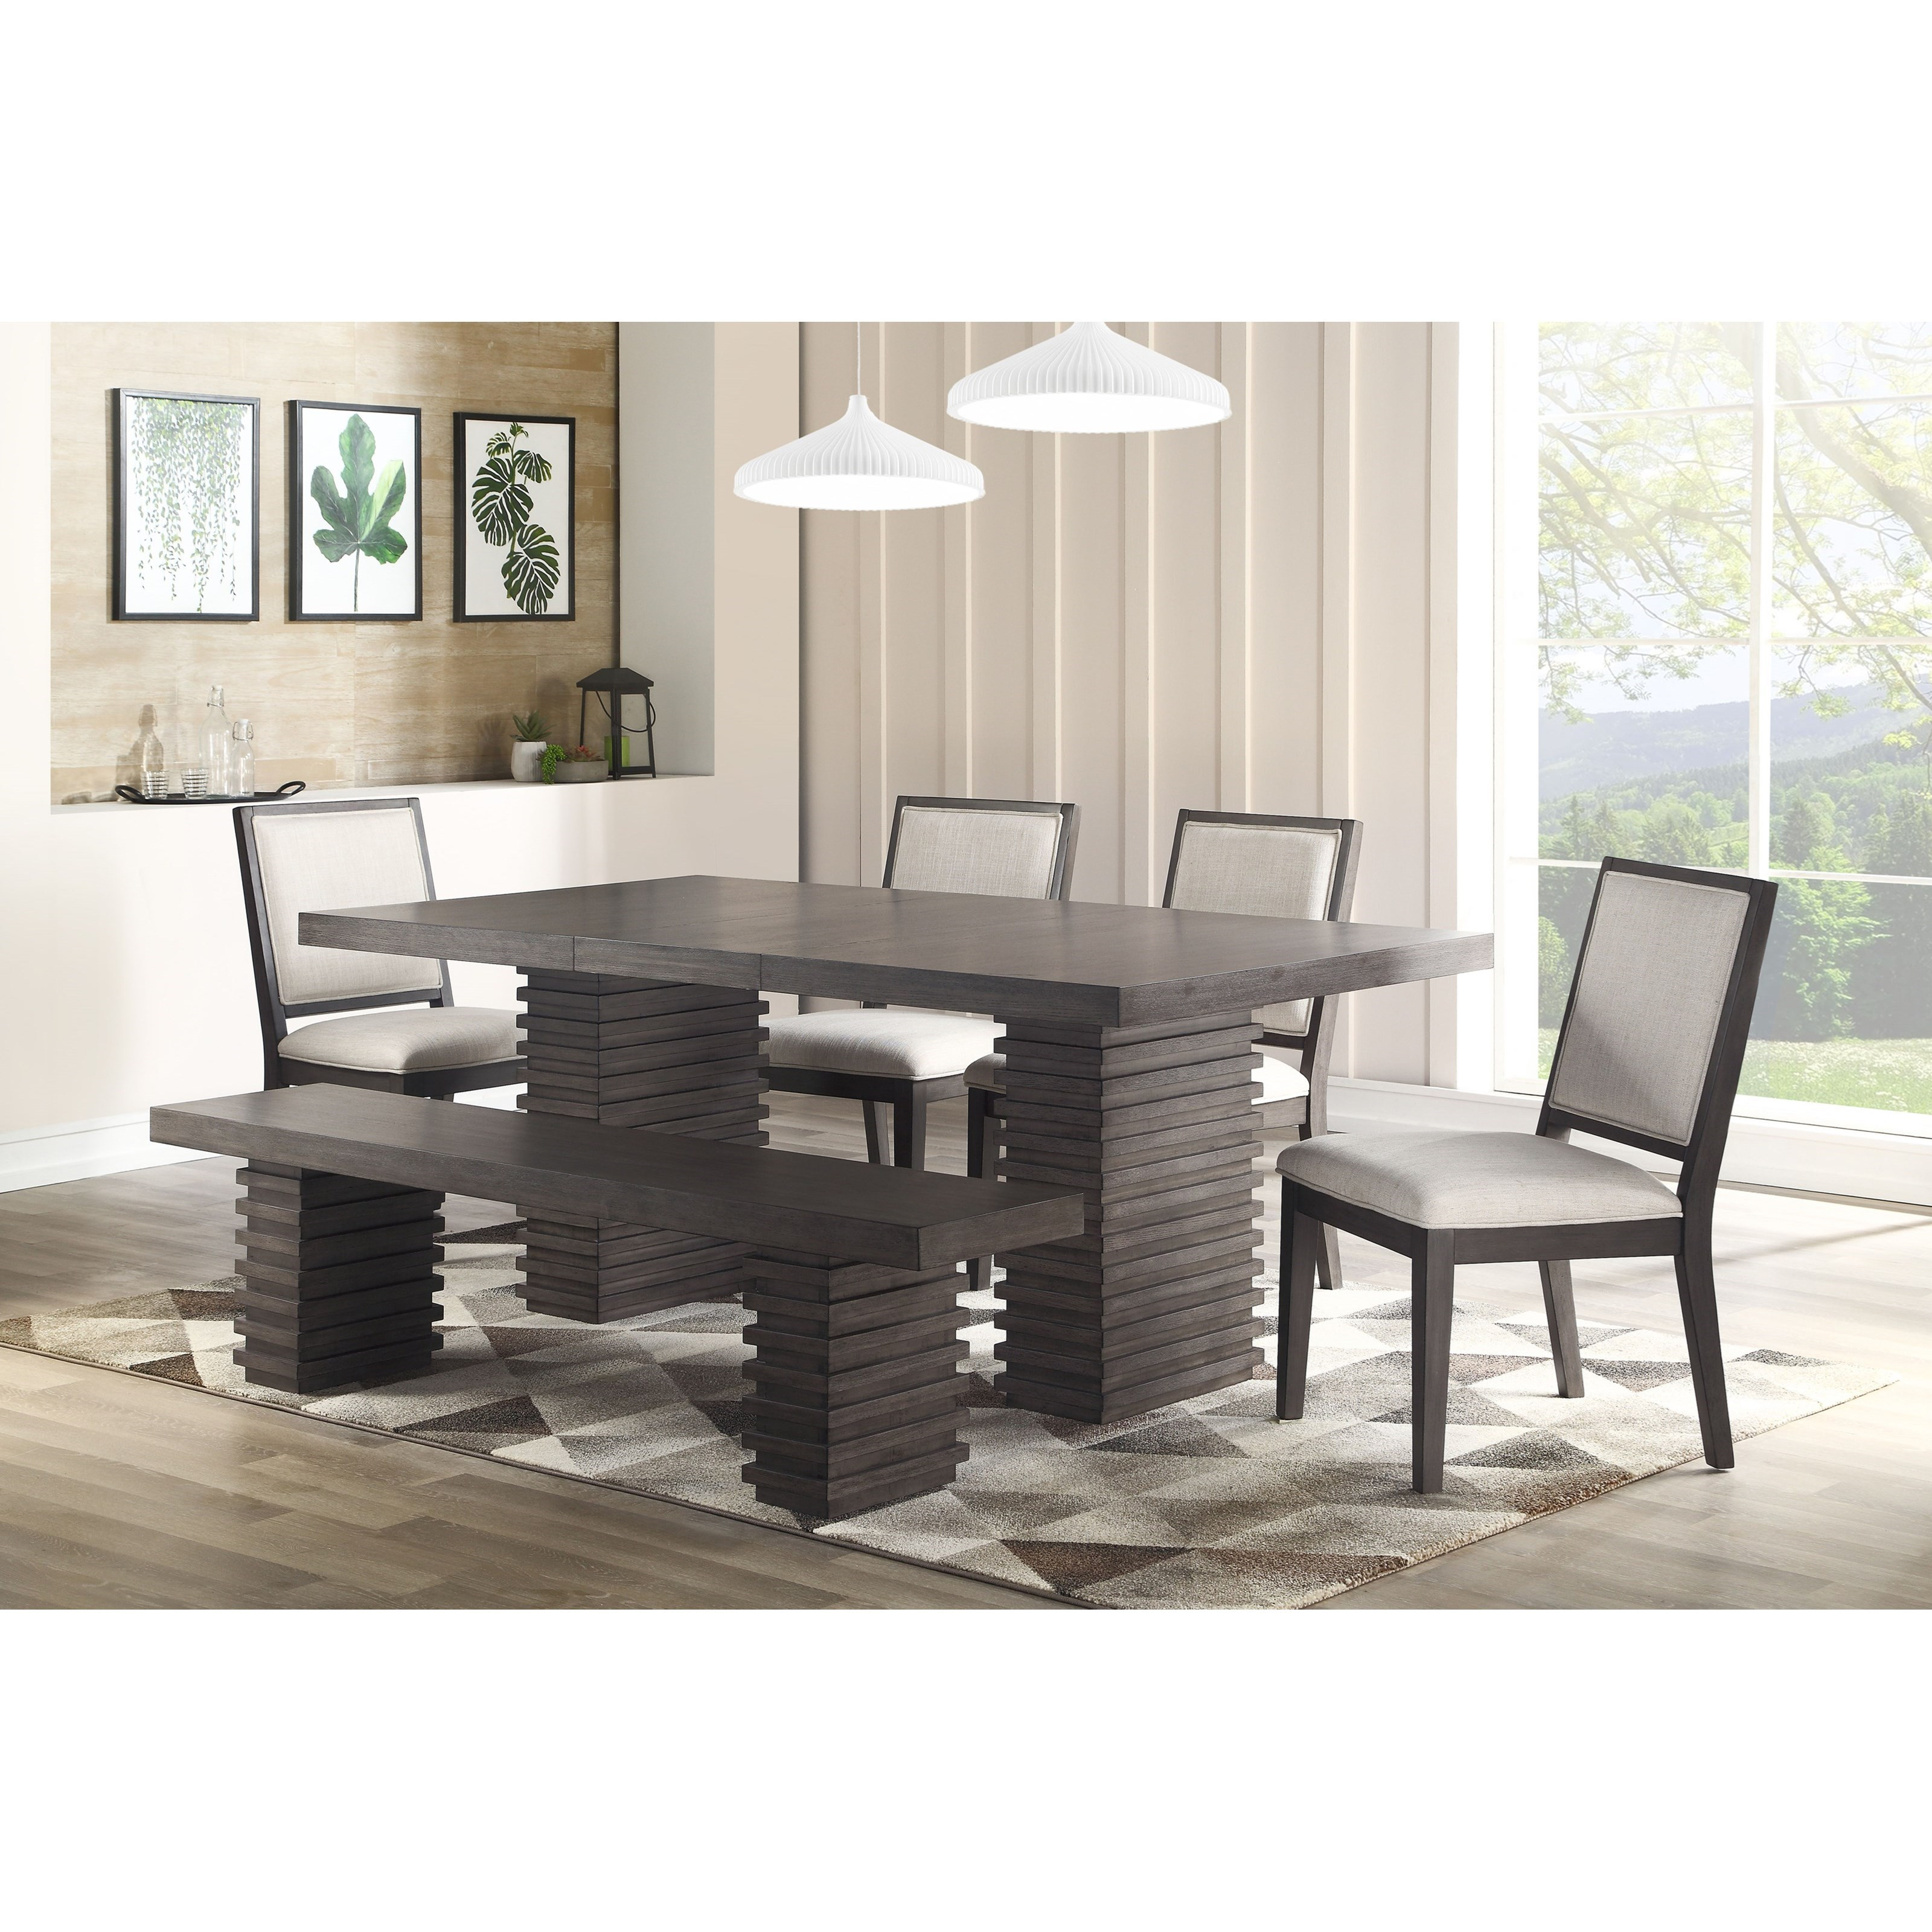 Mila Dining Table and Chair Set with Bench by Steve Silver at Northeast Factory Direct